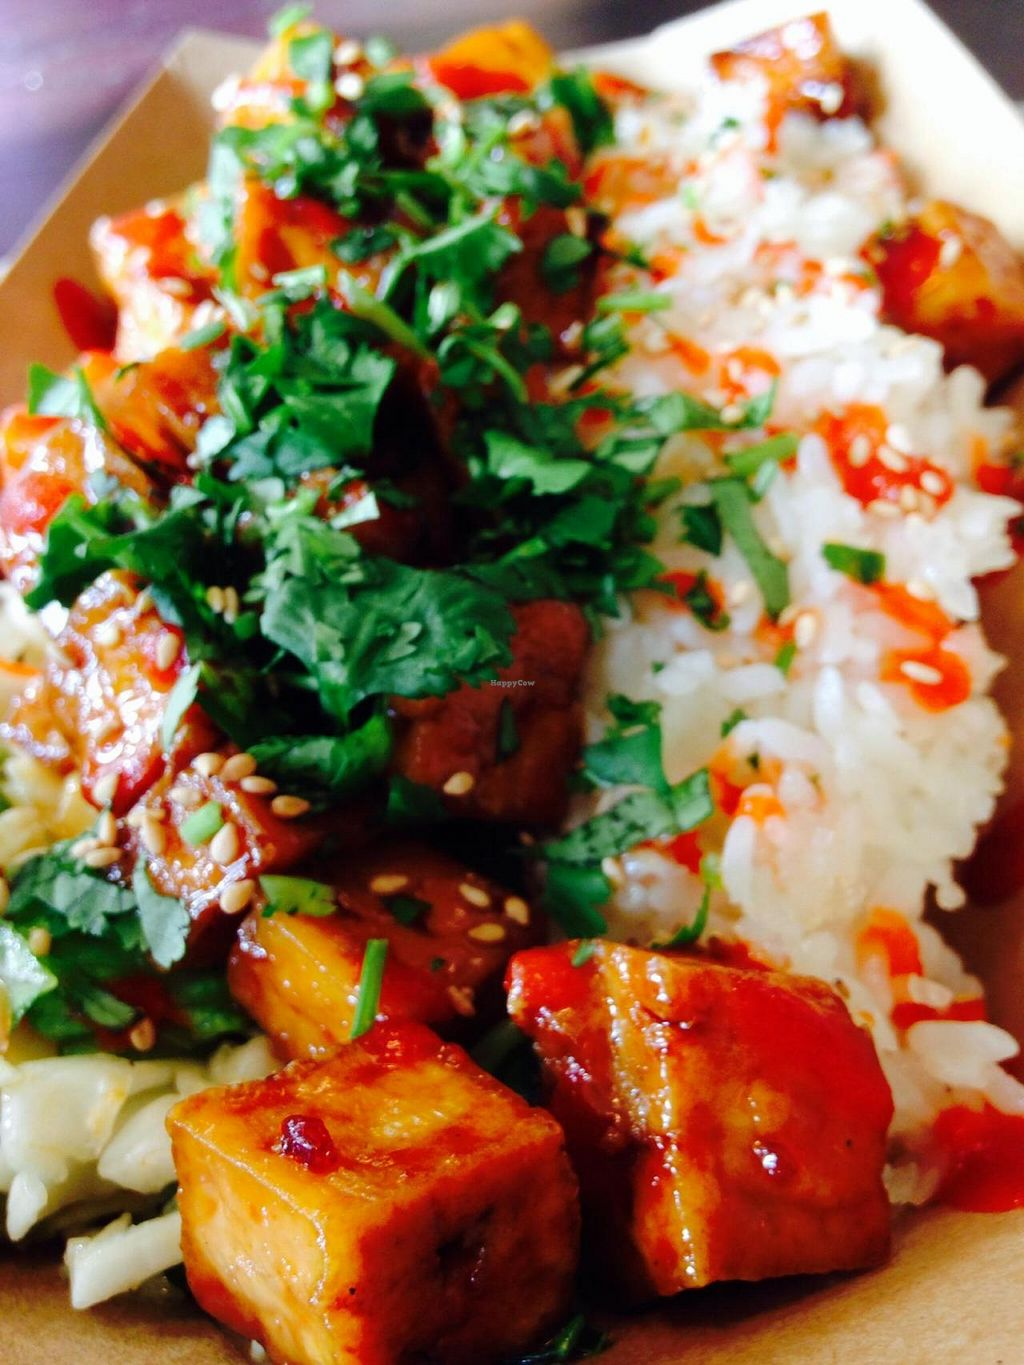 """Photo of TaKorean Korean BBQ Tacos  by <a href=""""/members/profile/cookiem"""">cookiem</a> <br/>Half napa-romaine slaw half rice caramelized tofu bowl <br/> September 21, 2014  - <a href='/contact/abuse/image/51543/80627'>Report</a>"""